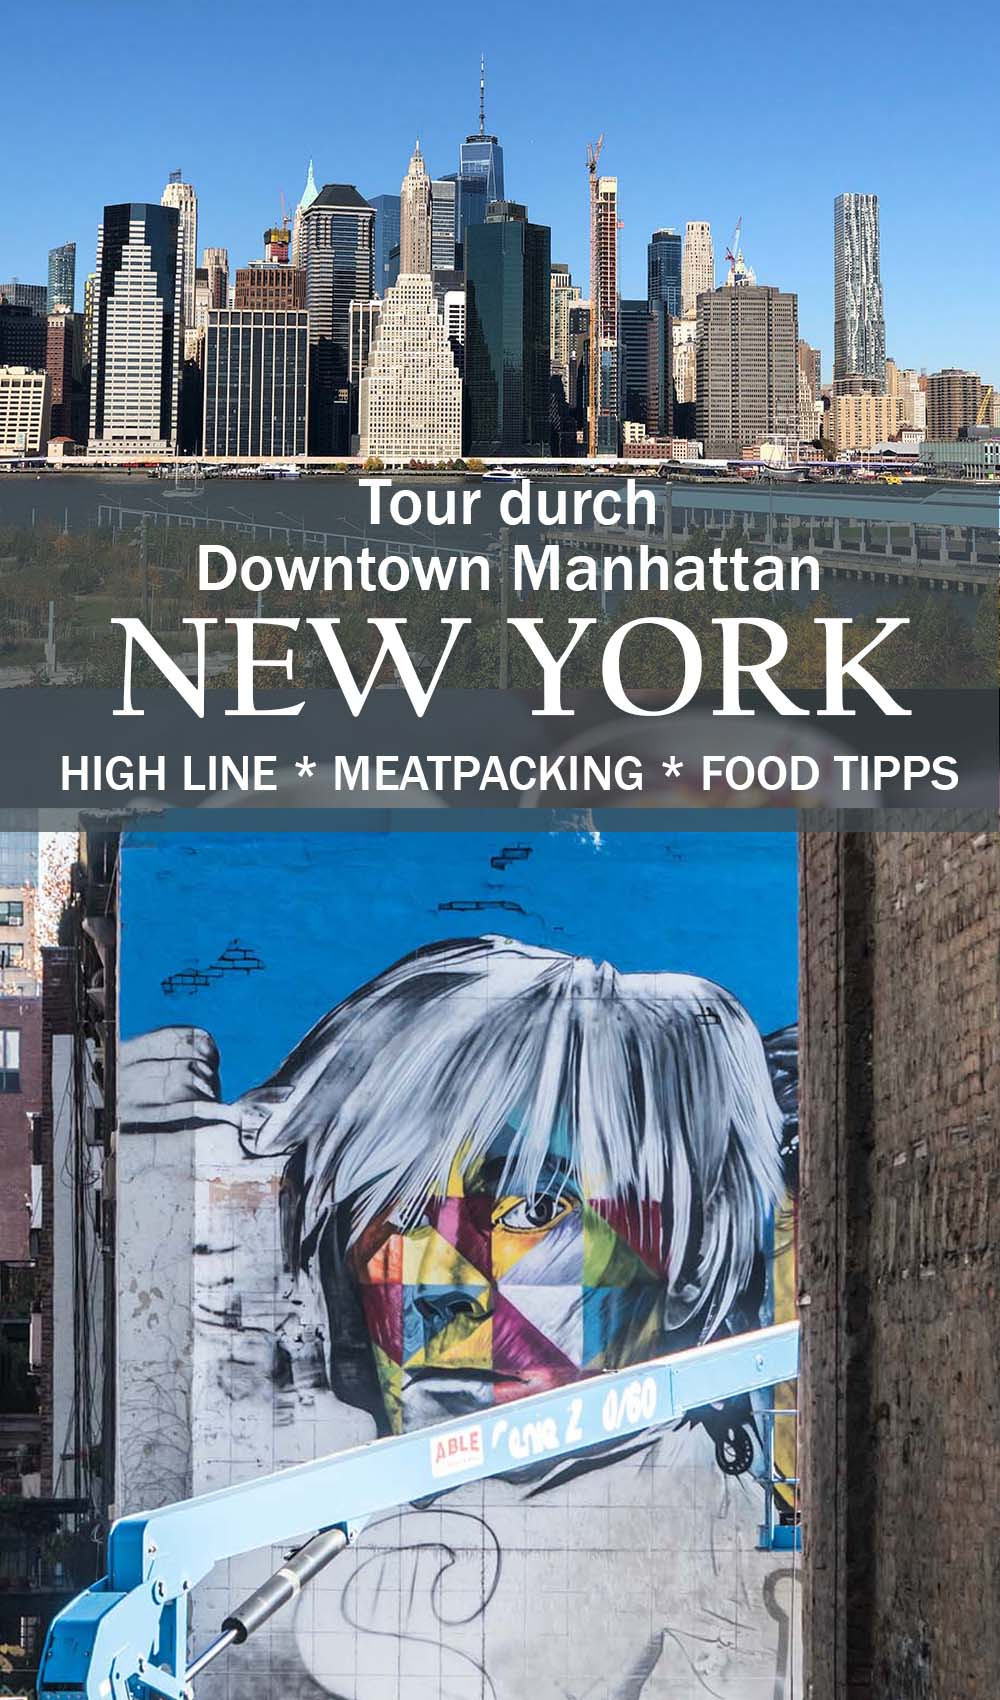 New York - Tour durch Downtown Manhattan + High Line Park und Brooklyn Bridge mit vielen Food Tipps